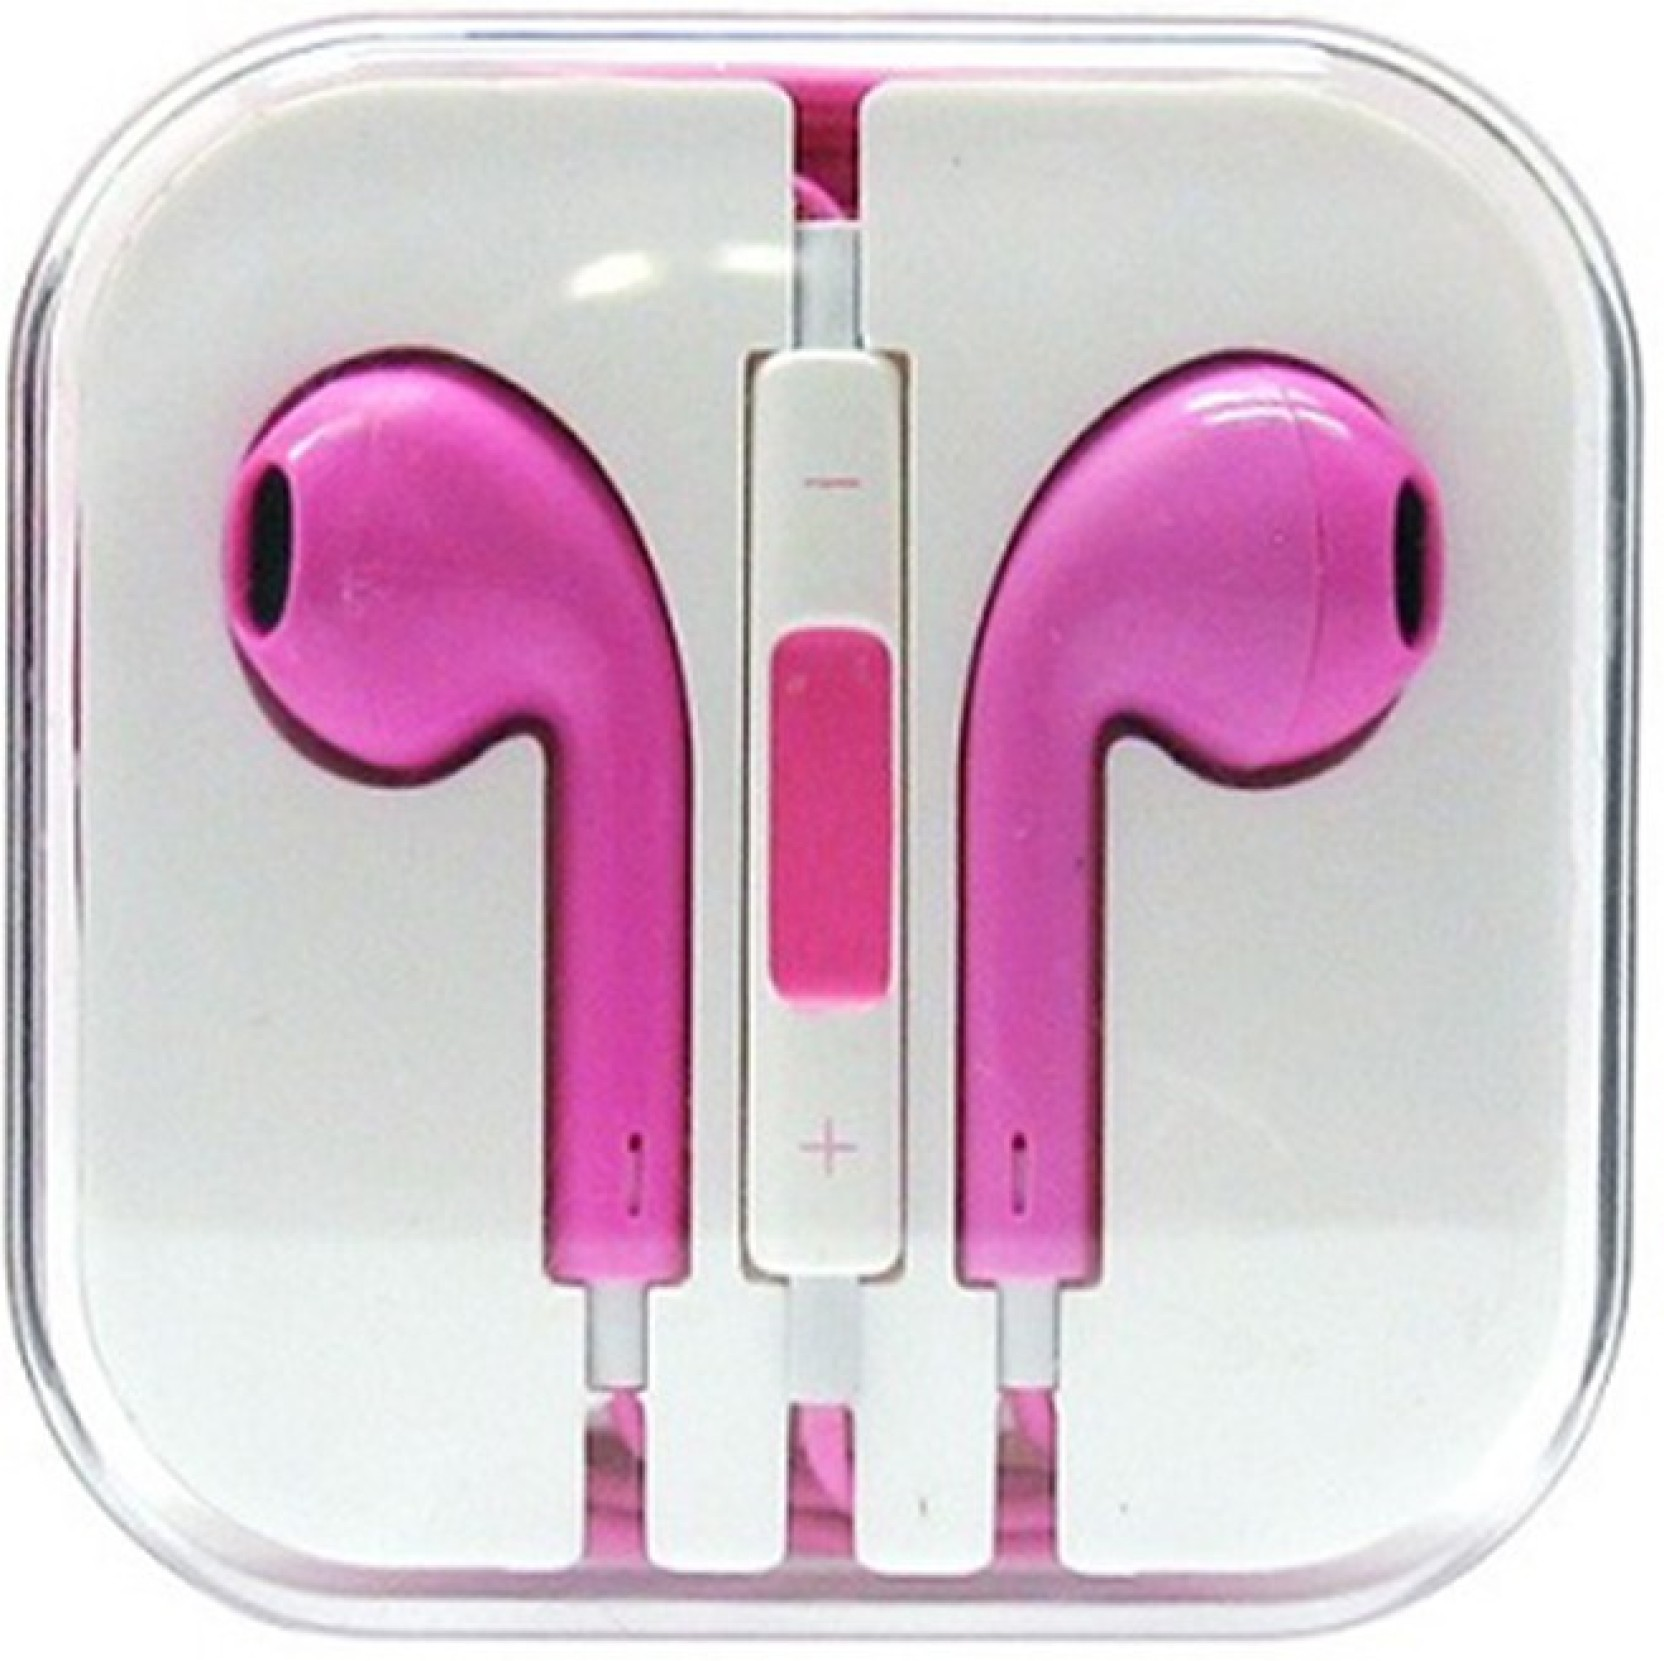 Karp Premium Quality Fancy Earpods For Ios Compatible Devices With Apple Earphone Handsfree Iphone 5 Rainbow Colours Mic Volume Controller Wired Headset Compare